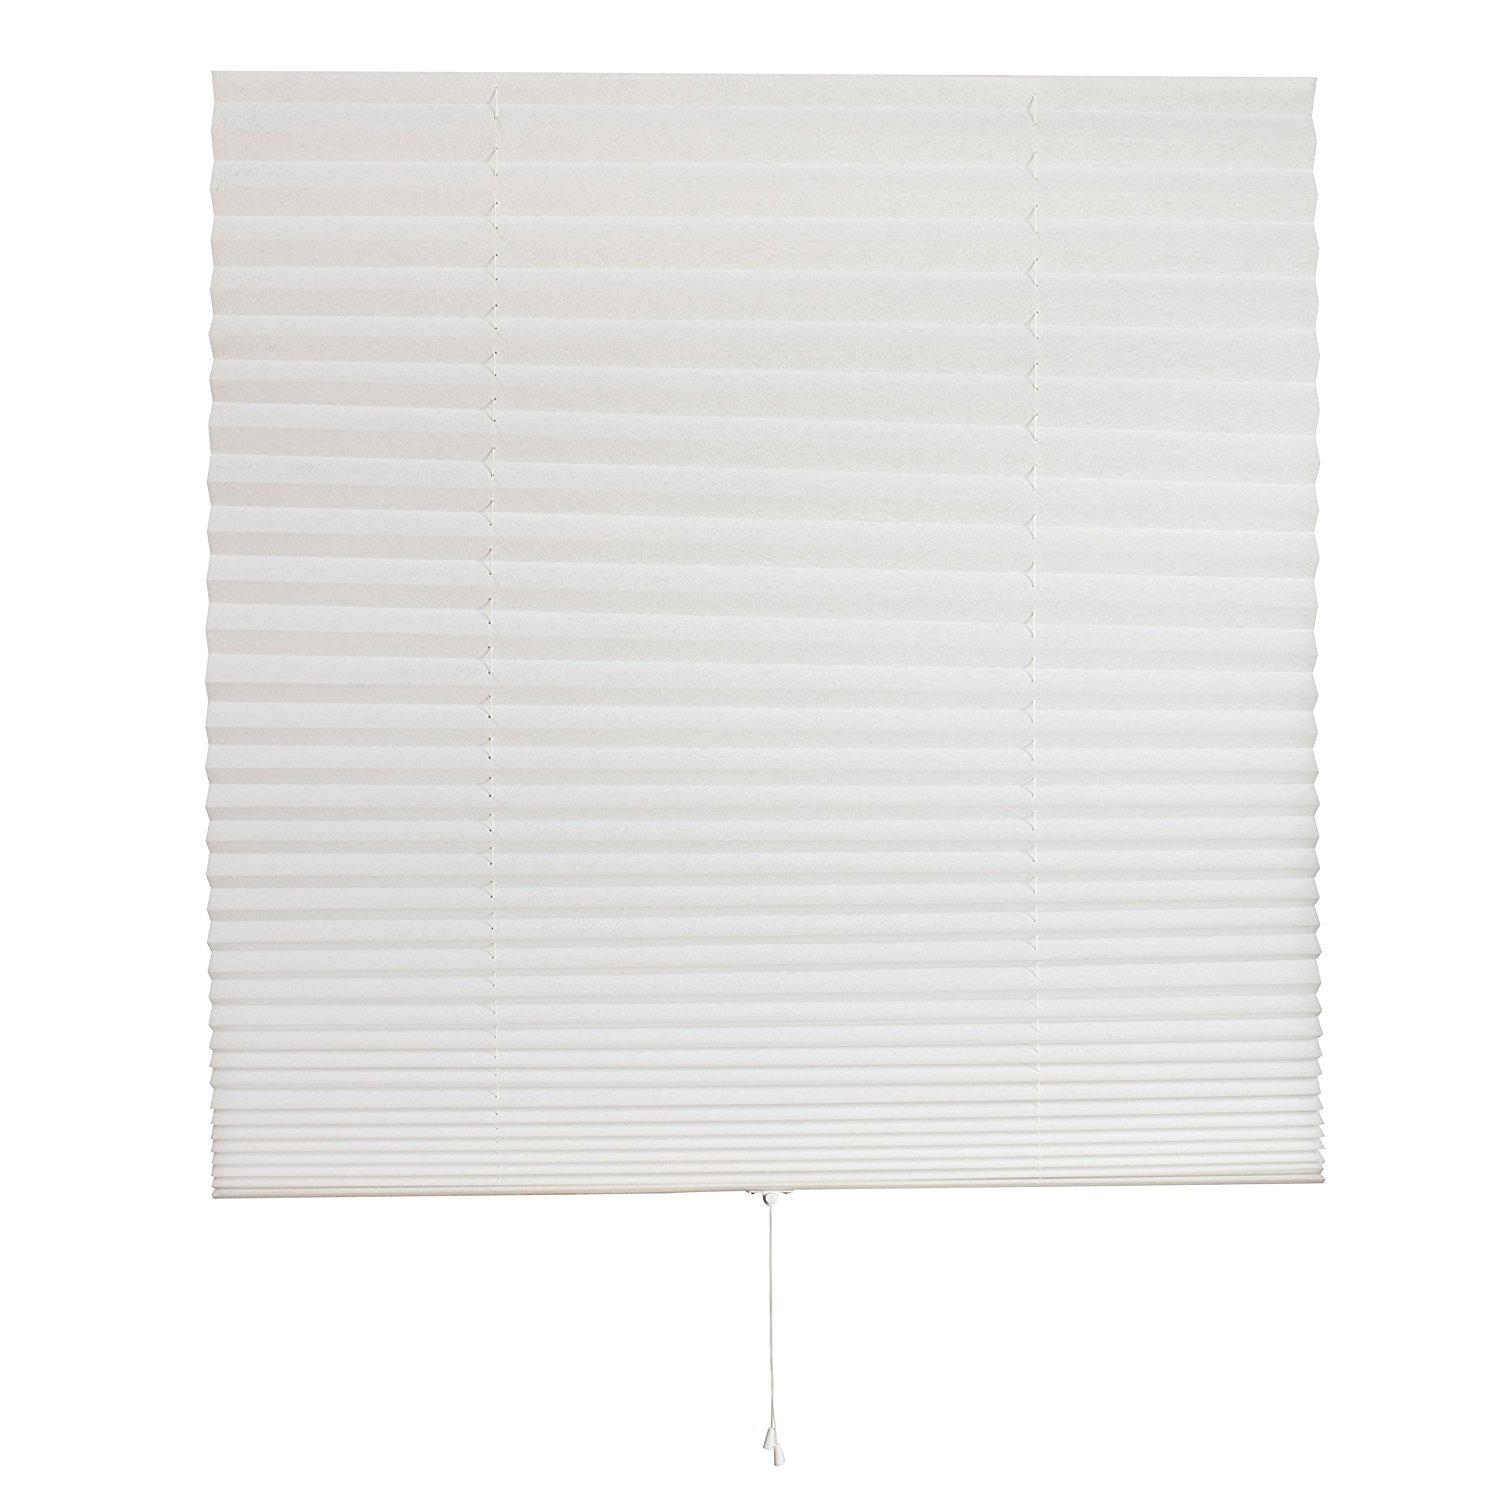 """Luxr Blinds Pleated Fabric Shades with Pull Cord Operation: Easy Installation Light Filtering Blinds- White, 48""""x72"""" (1) 48""""x72"""" (1)"""